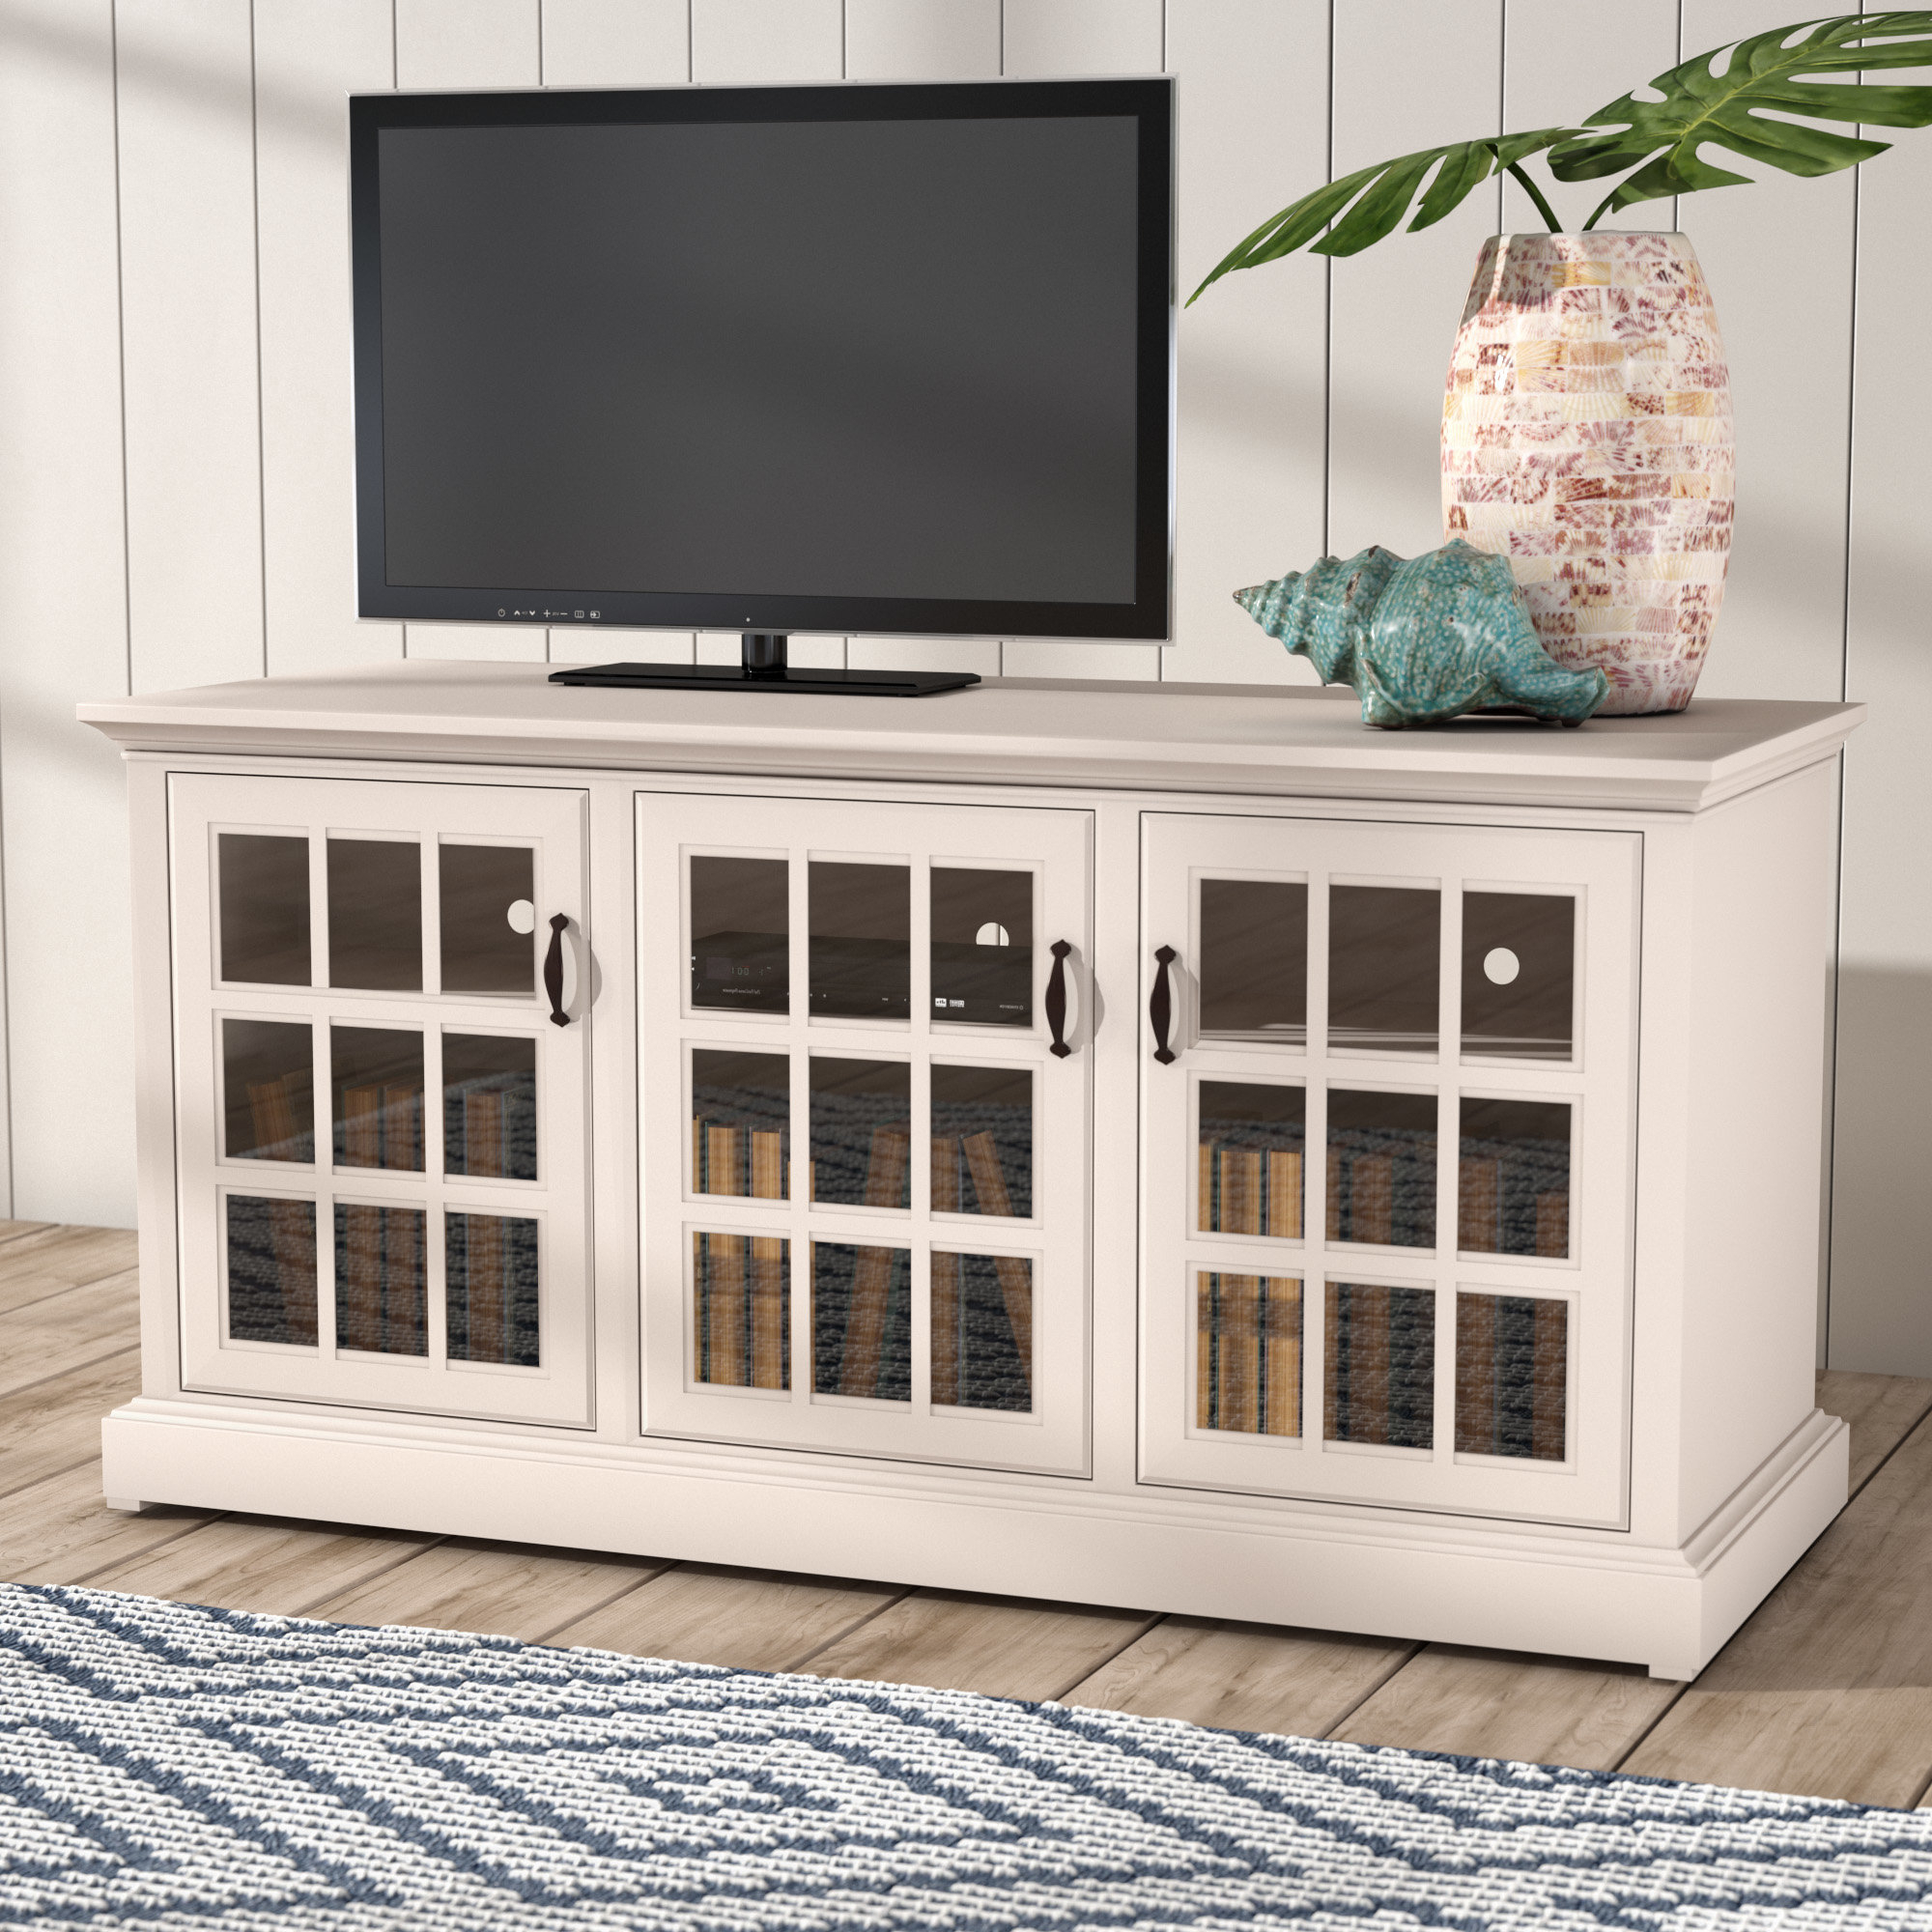 "Colefax Vintage Tv Stands For Tvs Up To 78"" In Well Liked Beachcrest Home Dartmouth Tv Stand For Tvs Up To 43 (Gallery 5 of 20)"